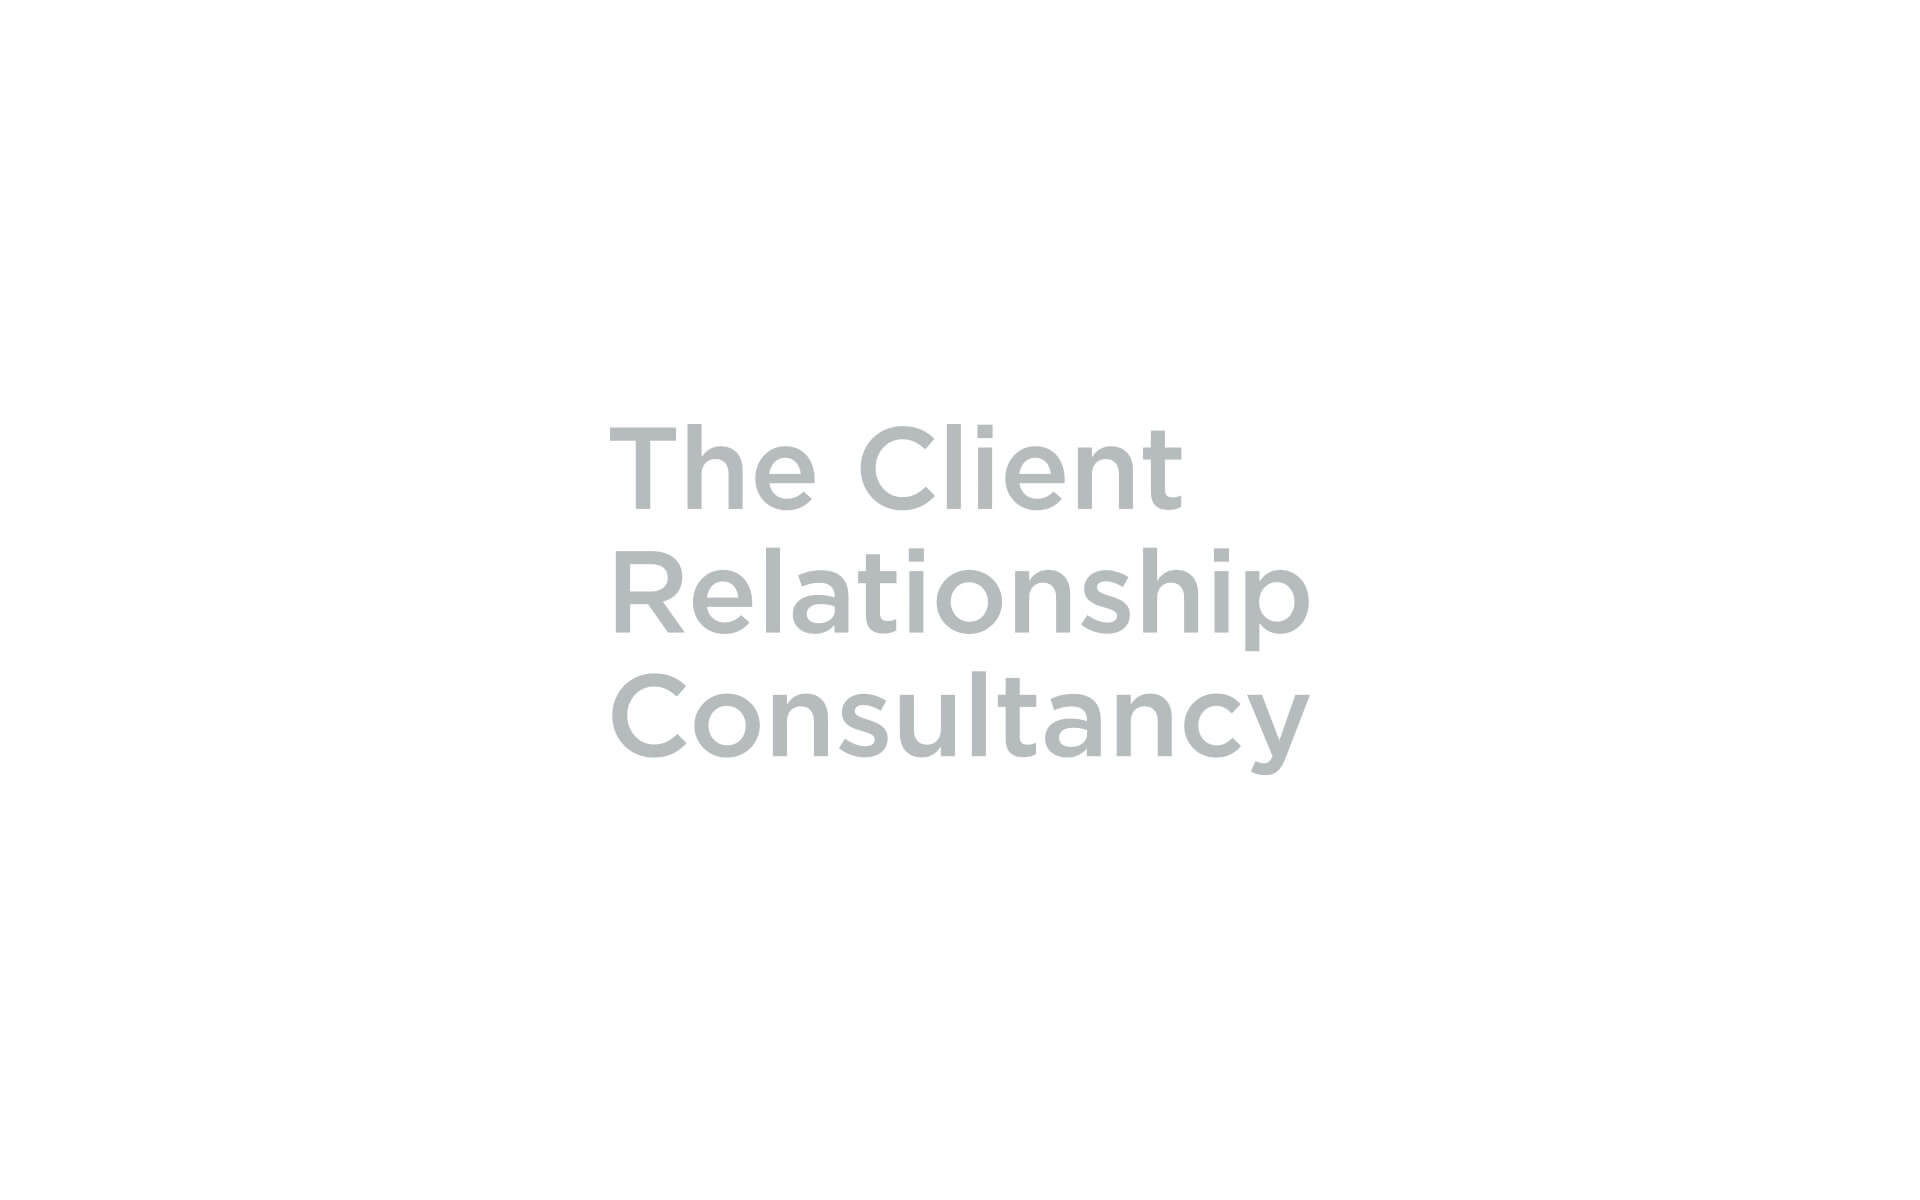 Philip_Mawer_Client_Relationship_Consultancy_01